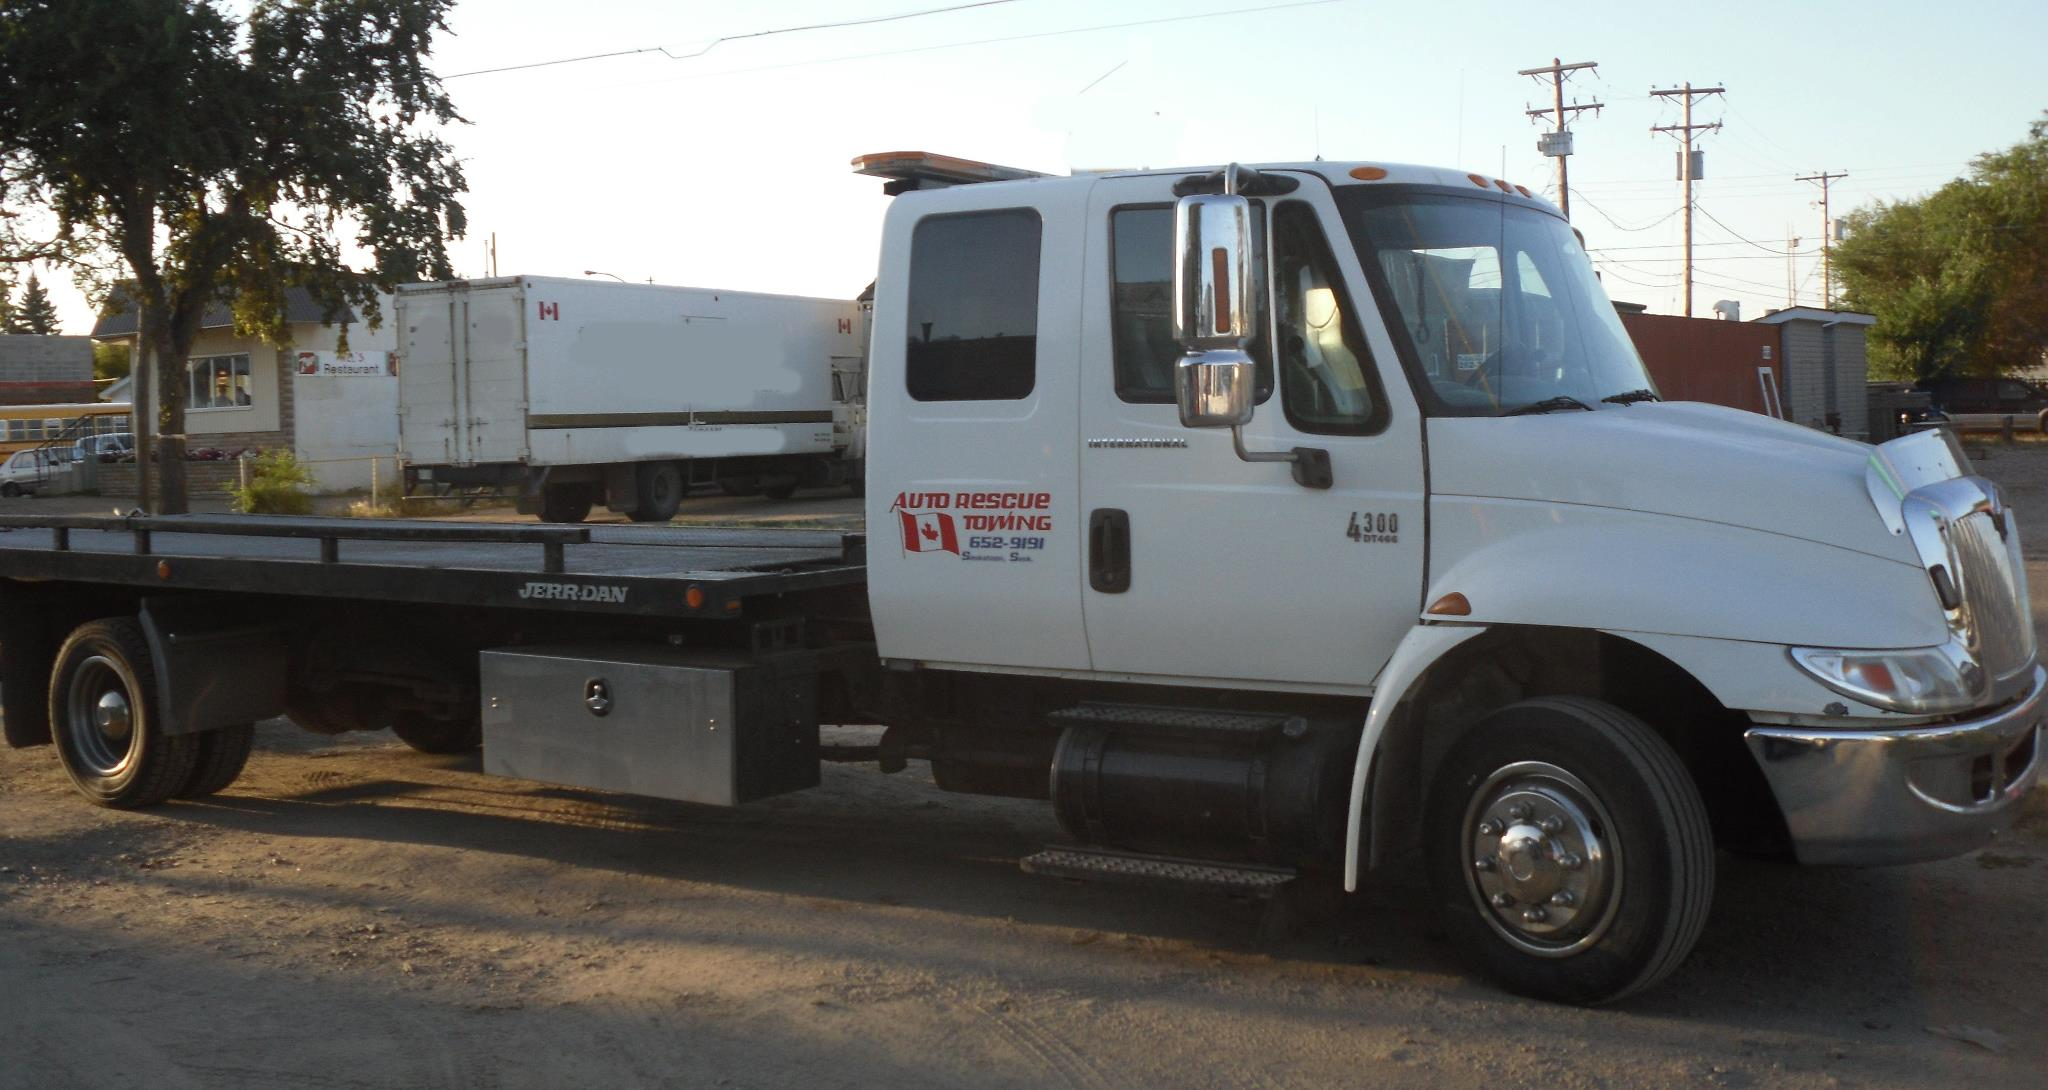 Auto Rescue Towing Flatbed Truck